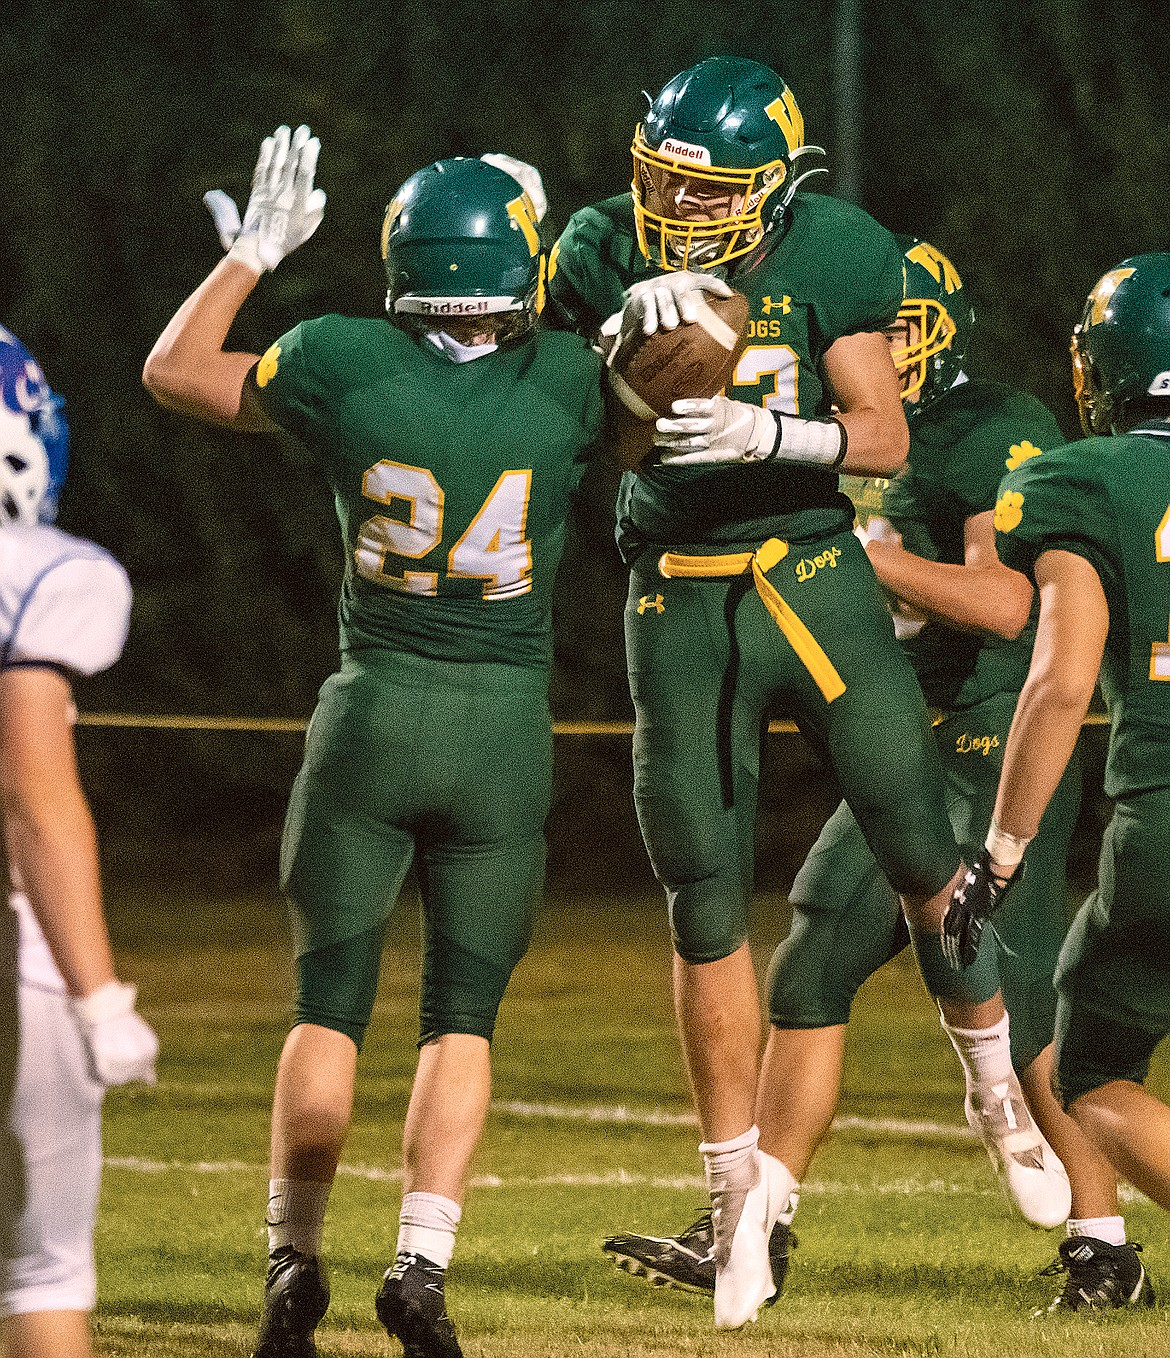 Ty Cameron celebrates a touchdown with Ty Schwaiger during the game against Columbia Falls Friday night. (Chris Peterson/Hungry Horse News)